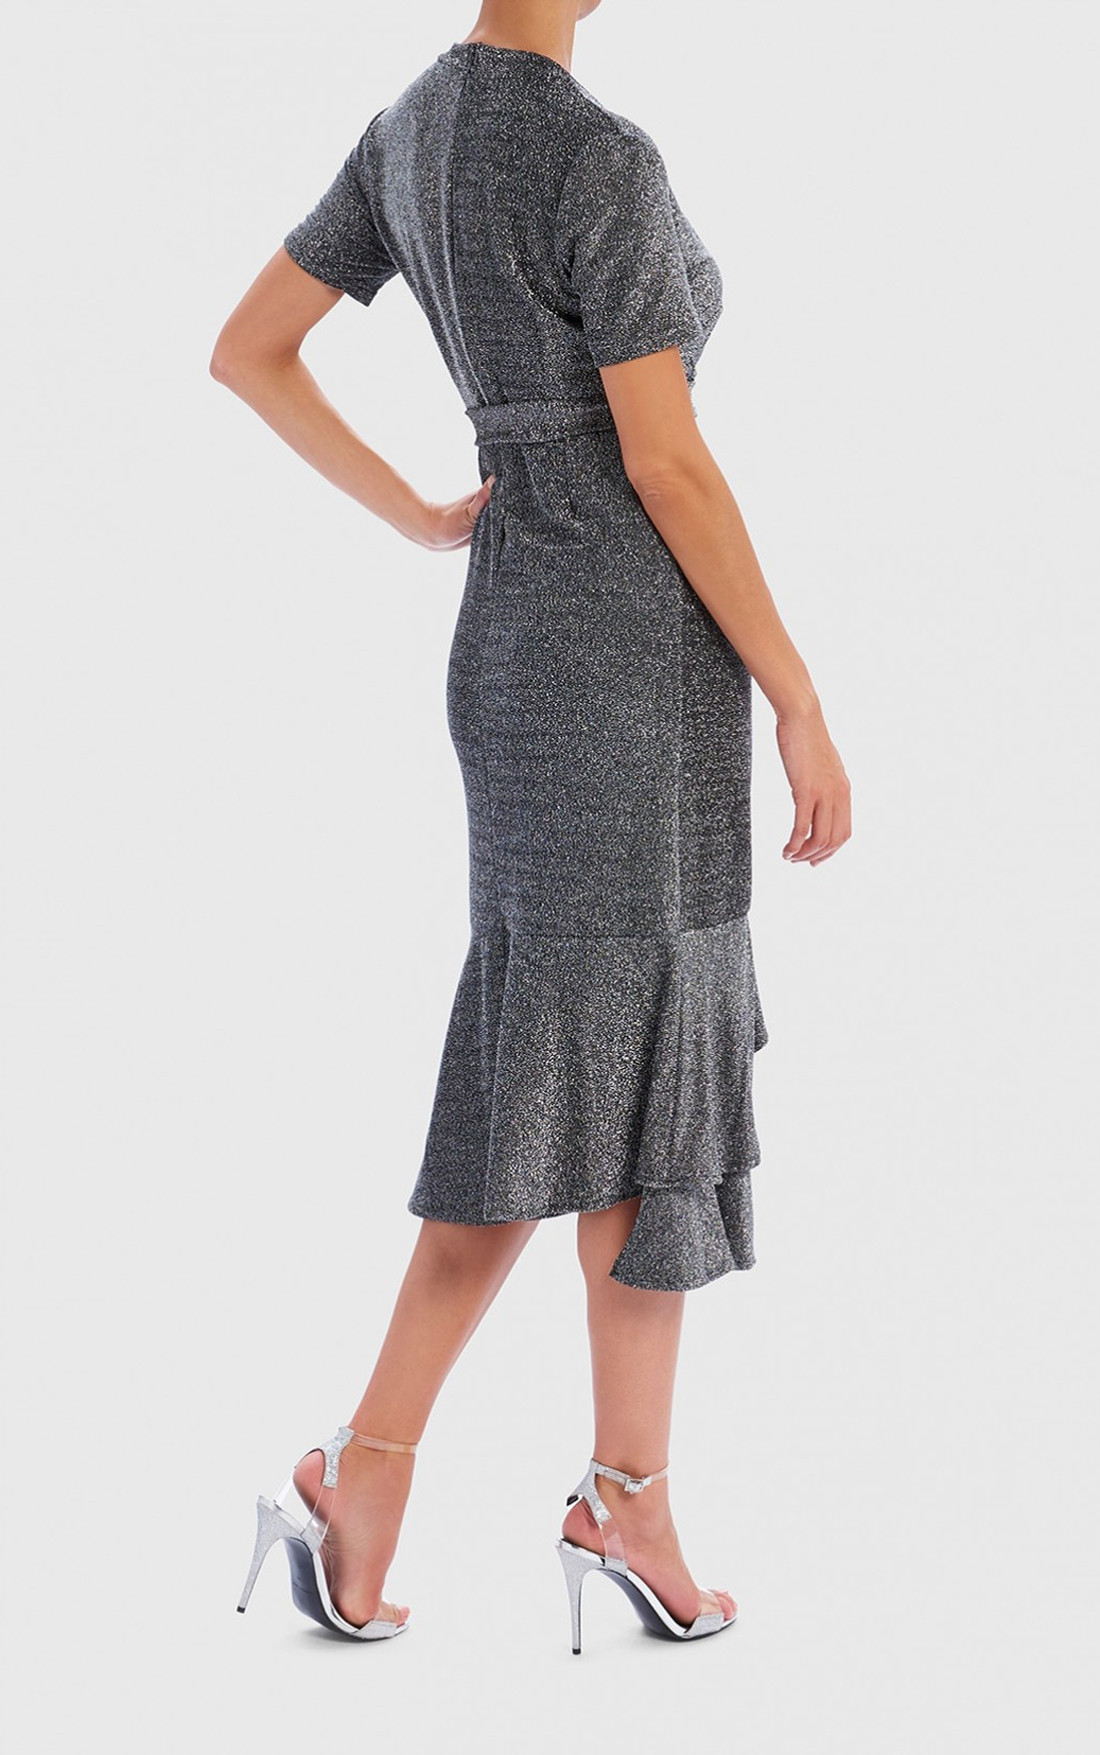 Forever Unique - Adella Silver Wrap Dress with Ruffle and Tie Detail (WF9503)